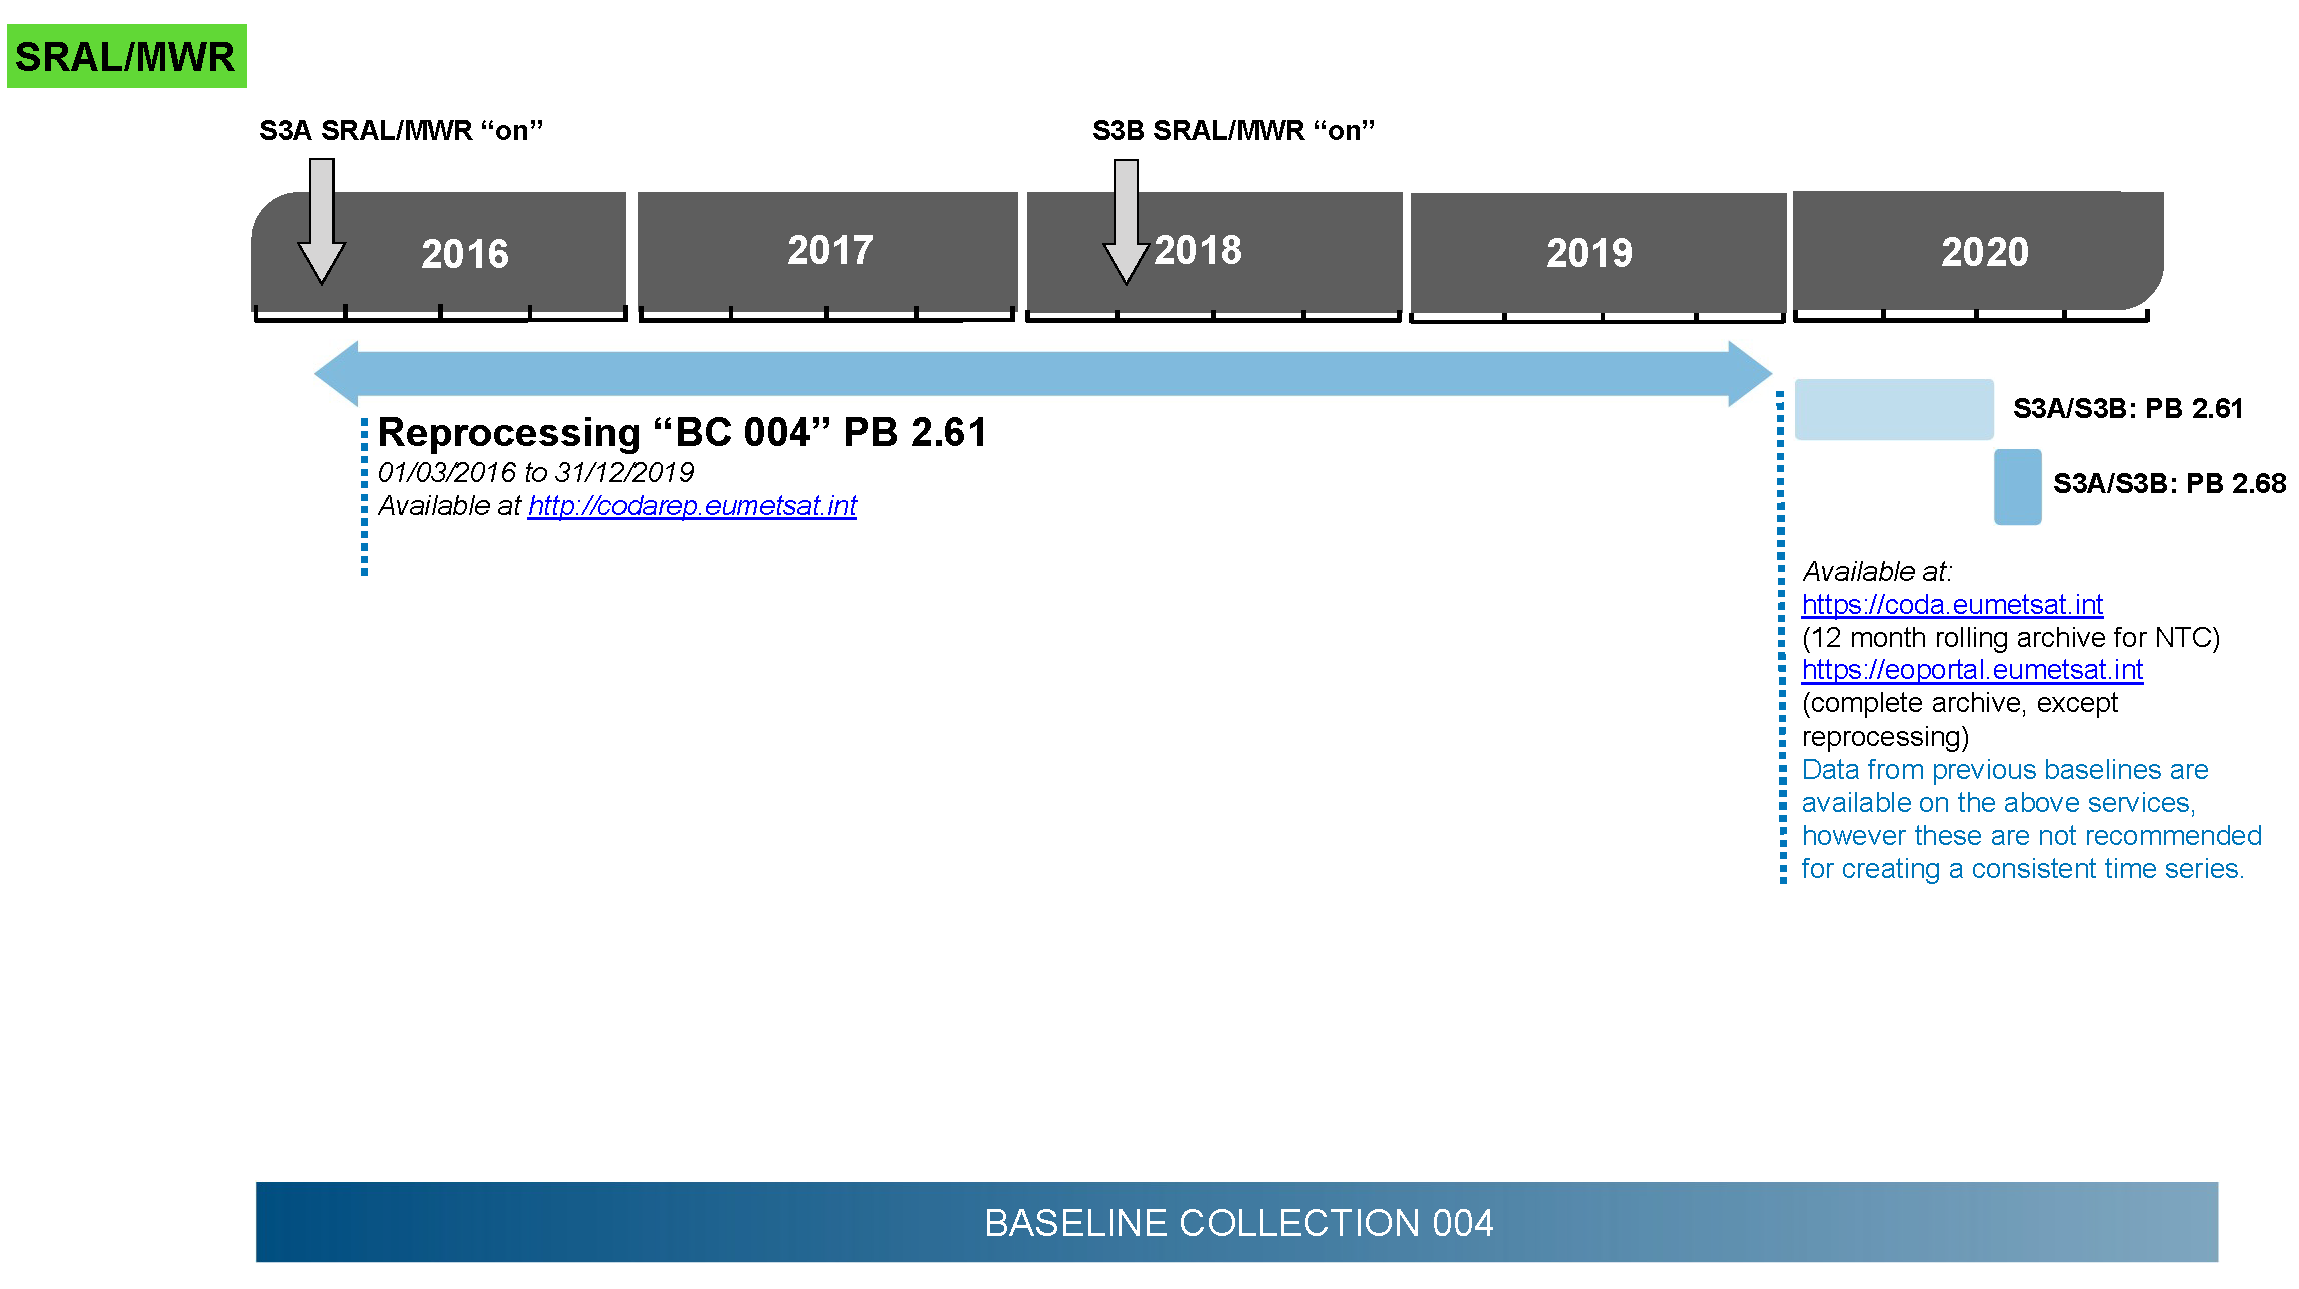 Timeline of the of the SRAL/MWR Processing Baselines of Sentinel-3